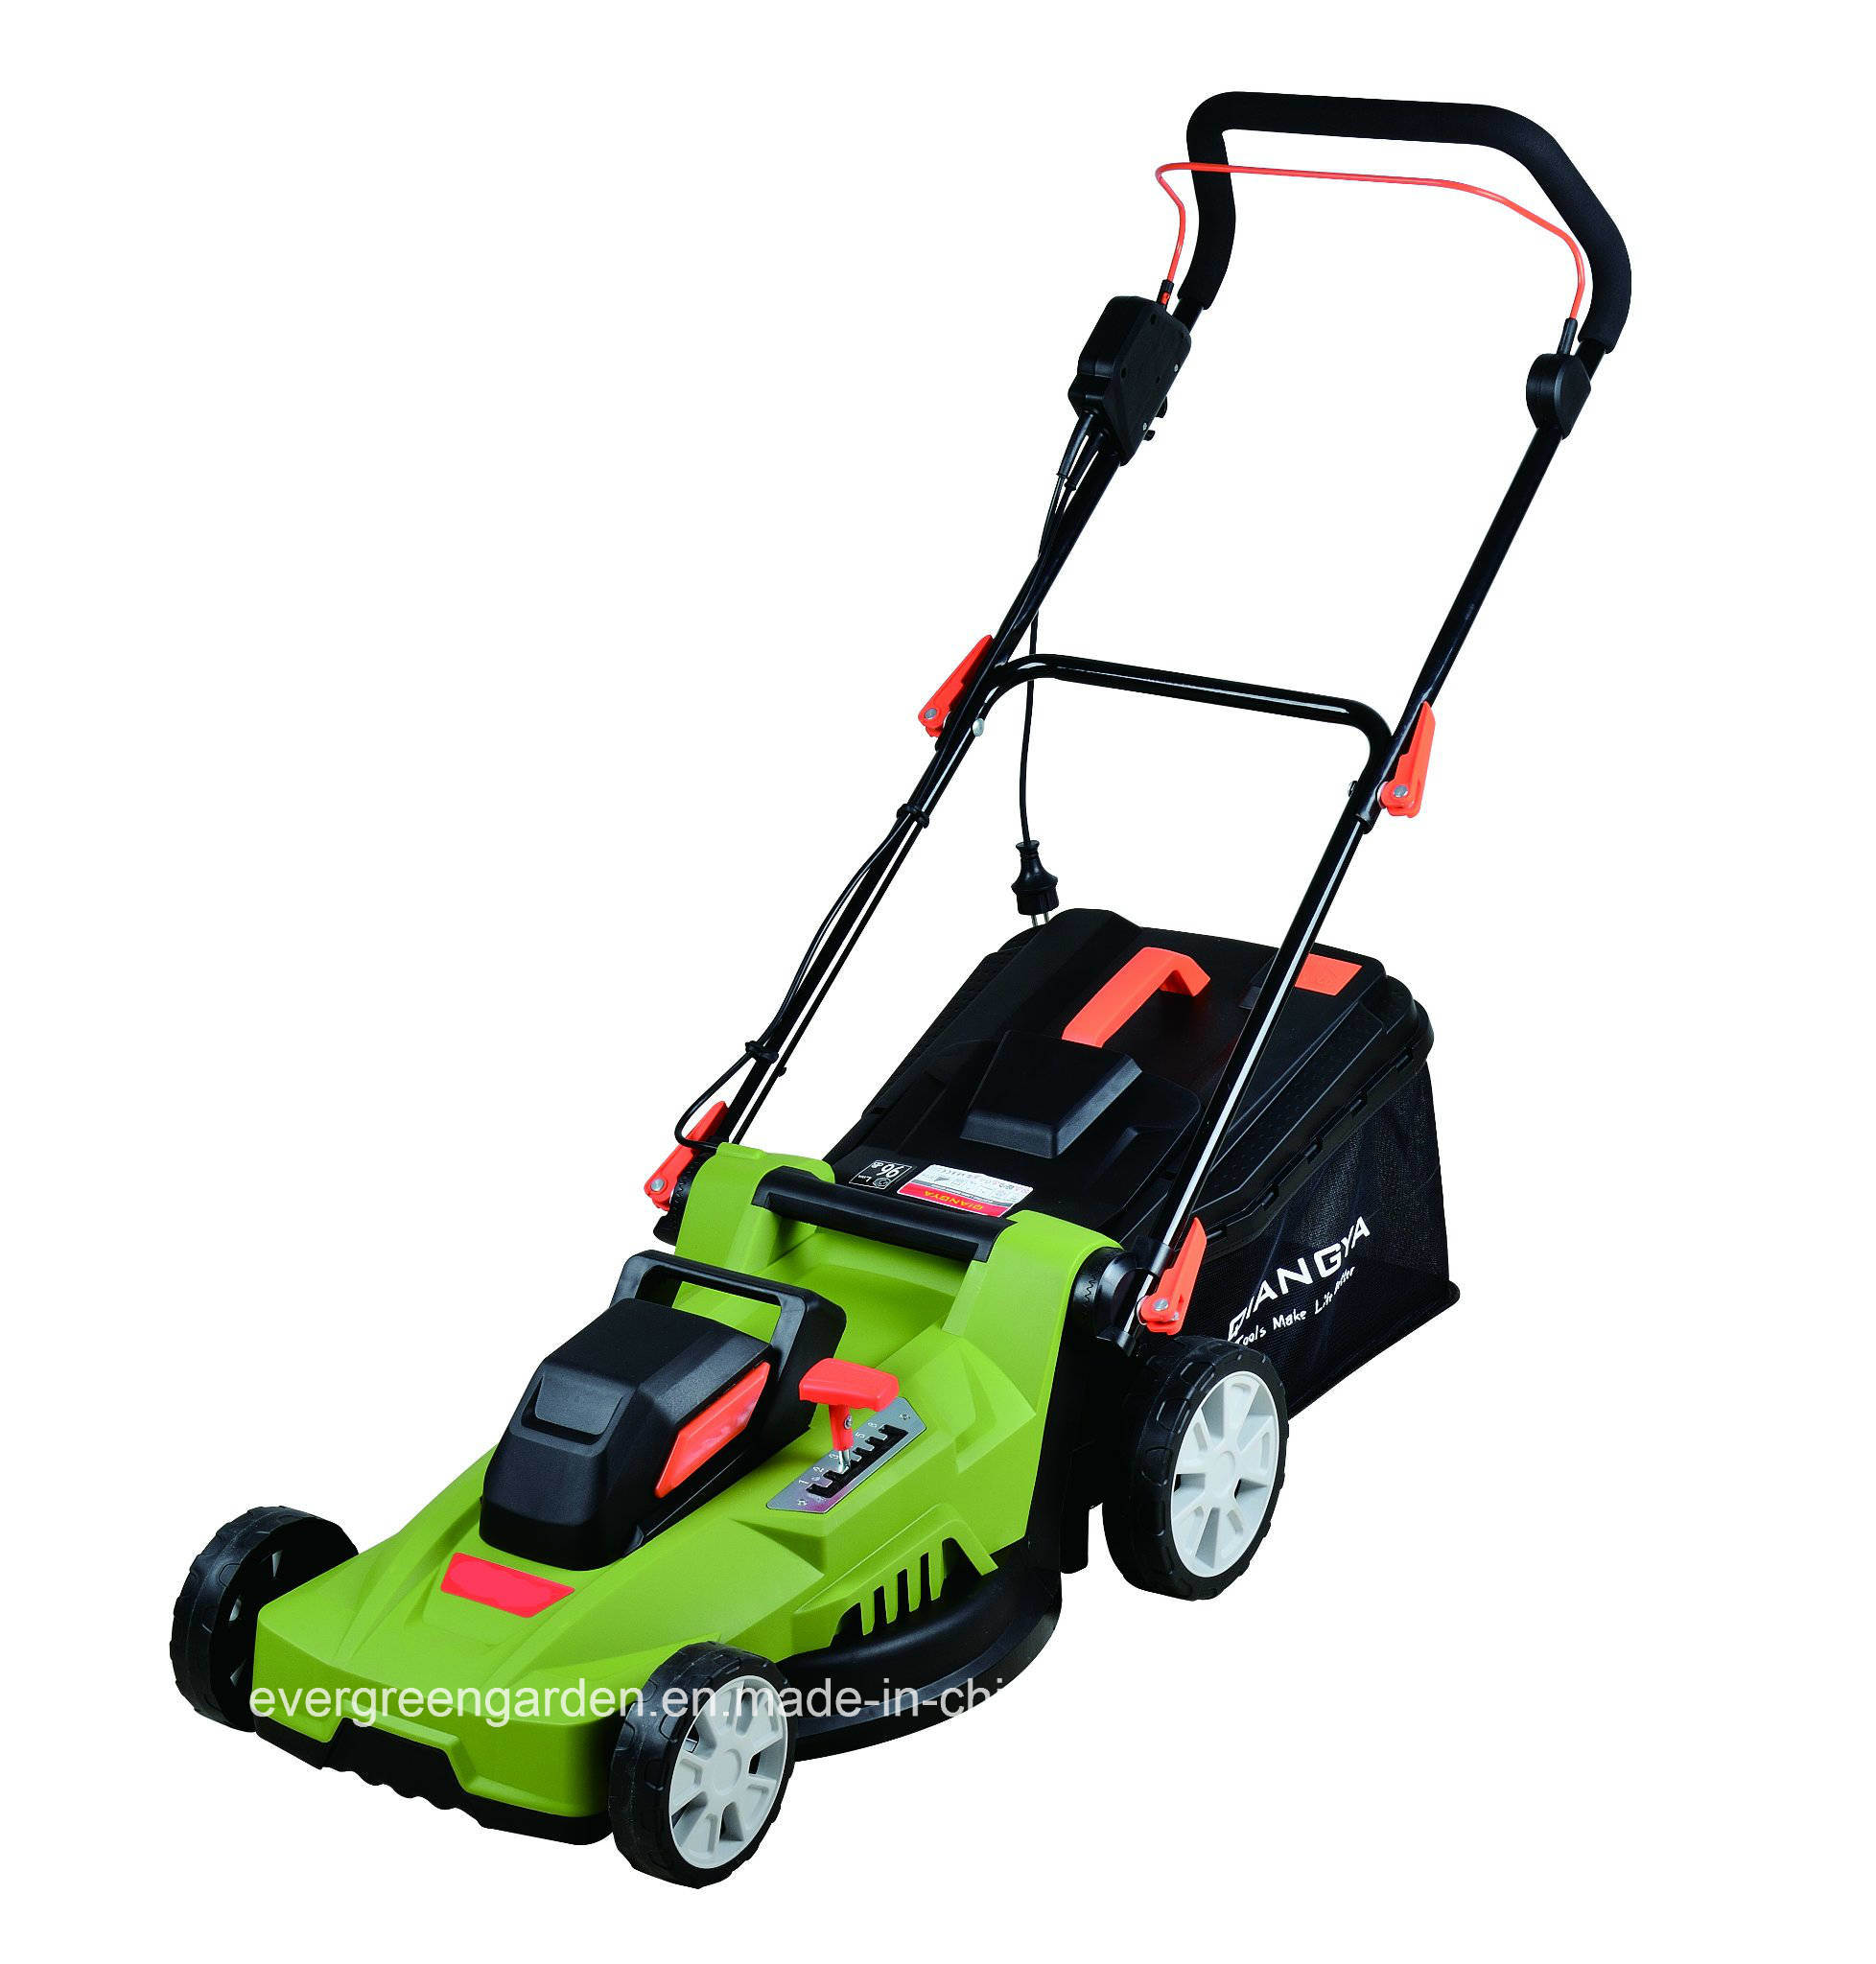 Electric Lawn Mower Sale Hot Item 1200w Electric Rotary Garden Lawn Mower Grass Cutting Machine For Sale